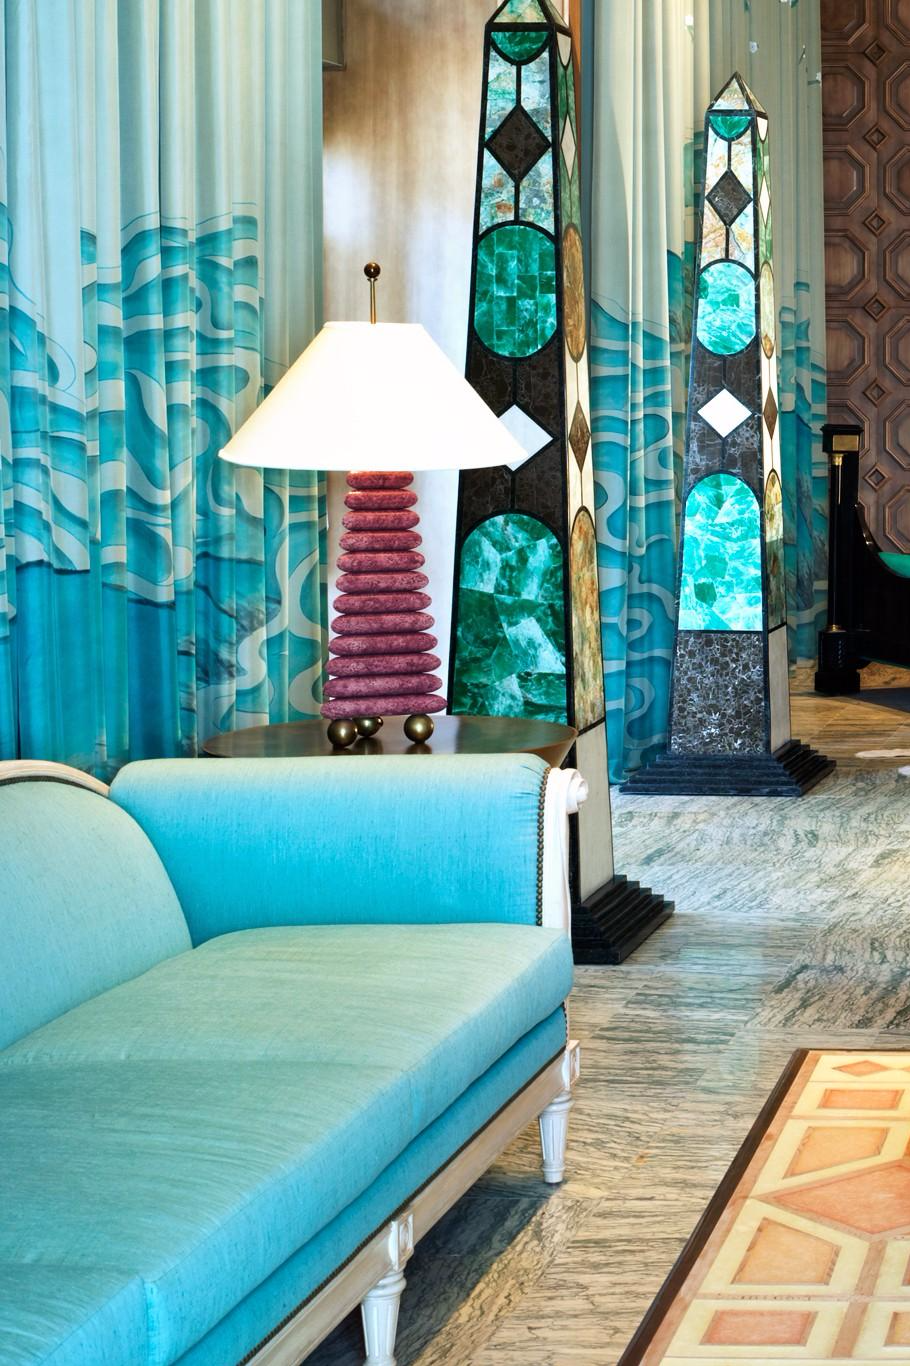 Kelly Wearstler's influence is seen in the copper-brushed mirrors and floating chandeliers in the lobby. Viceroy Miami (Miami, Florida) - Jetsetter